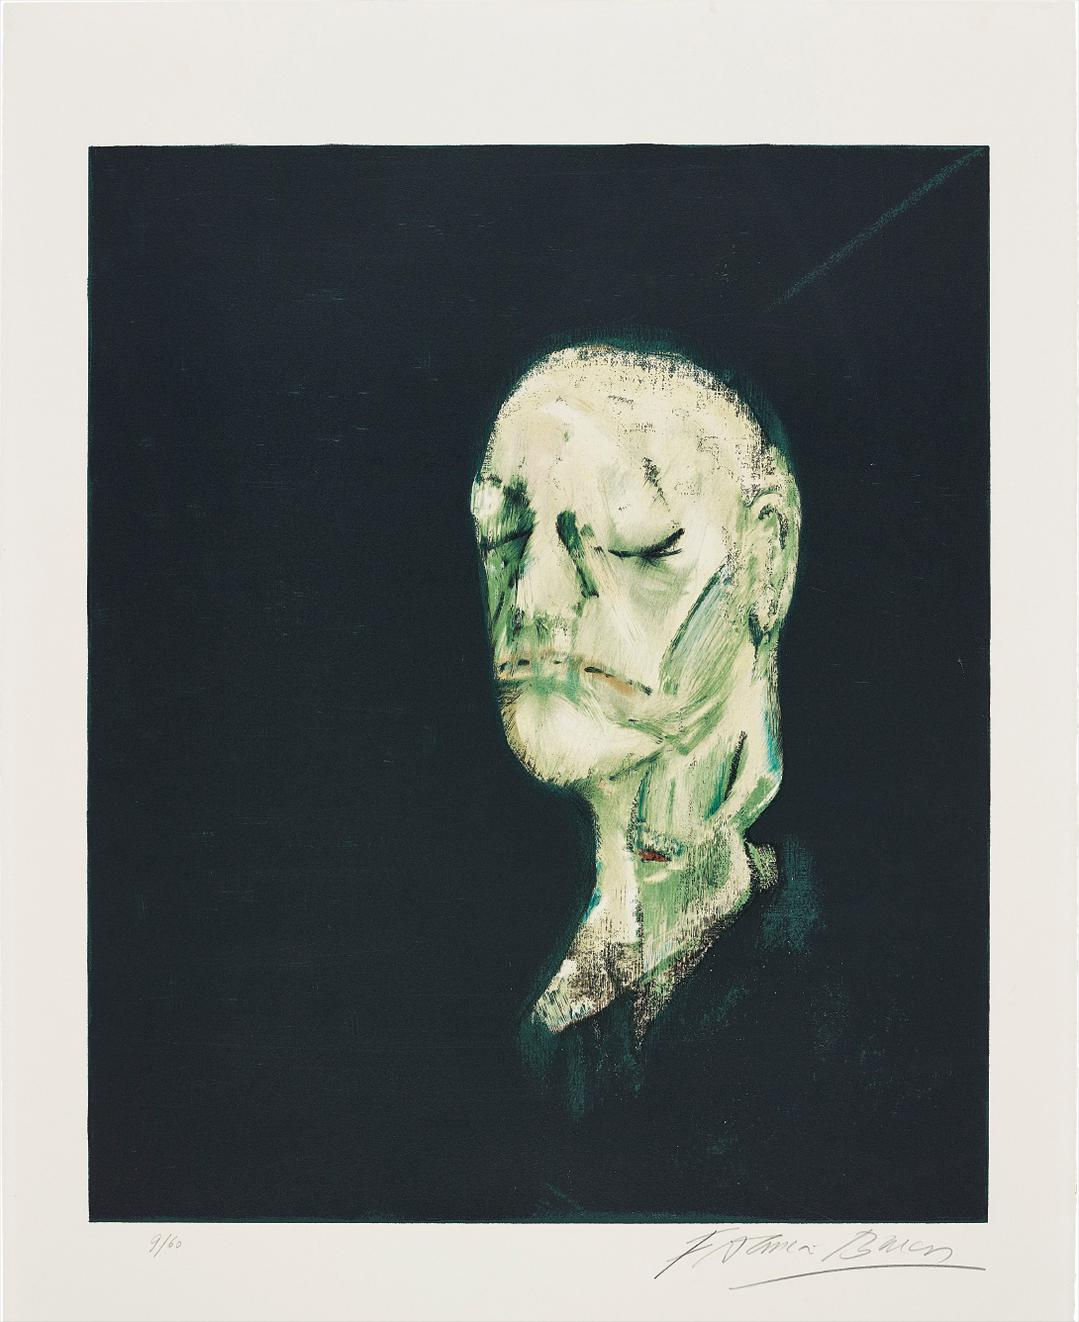 Francis Bacon-Masque Mortuaire De William Blake (After Study Of Portrait Based On The Life Mask Of William Blake, 1955)-1991